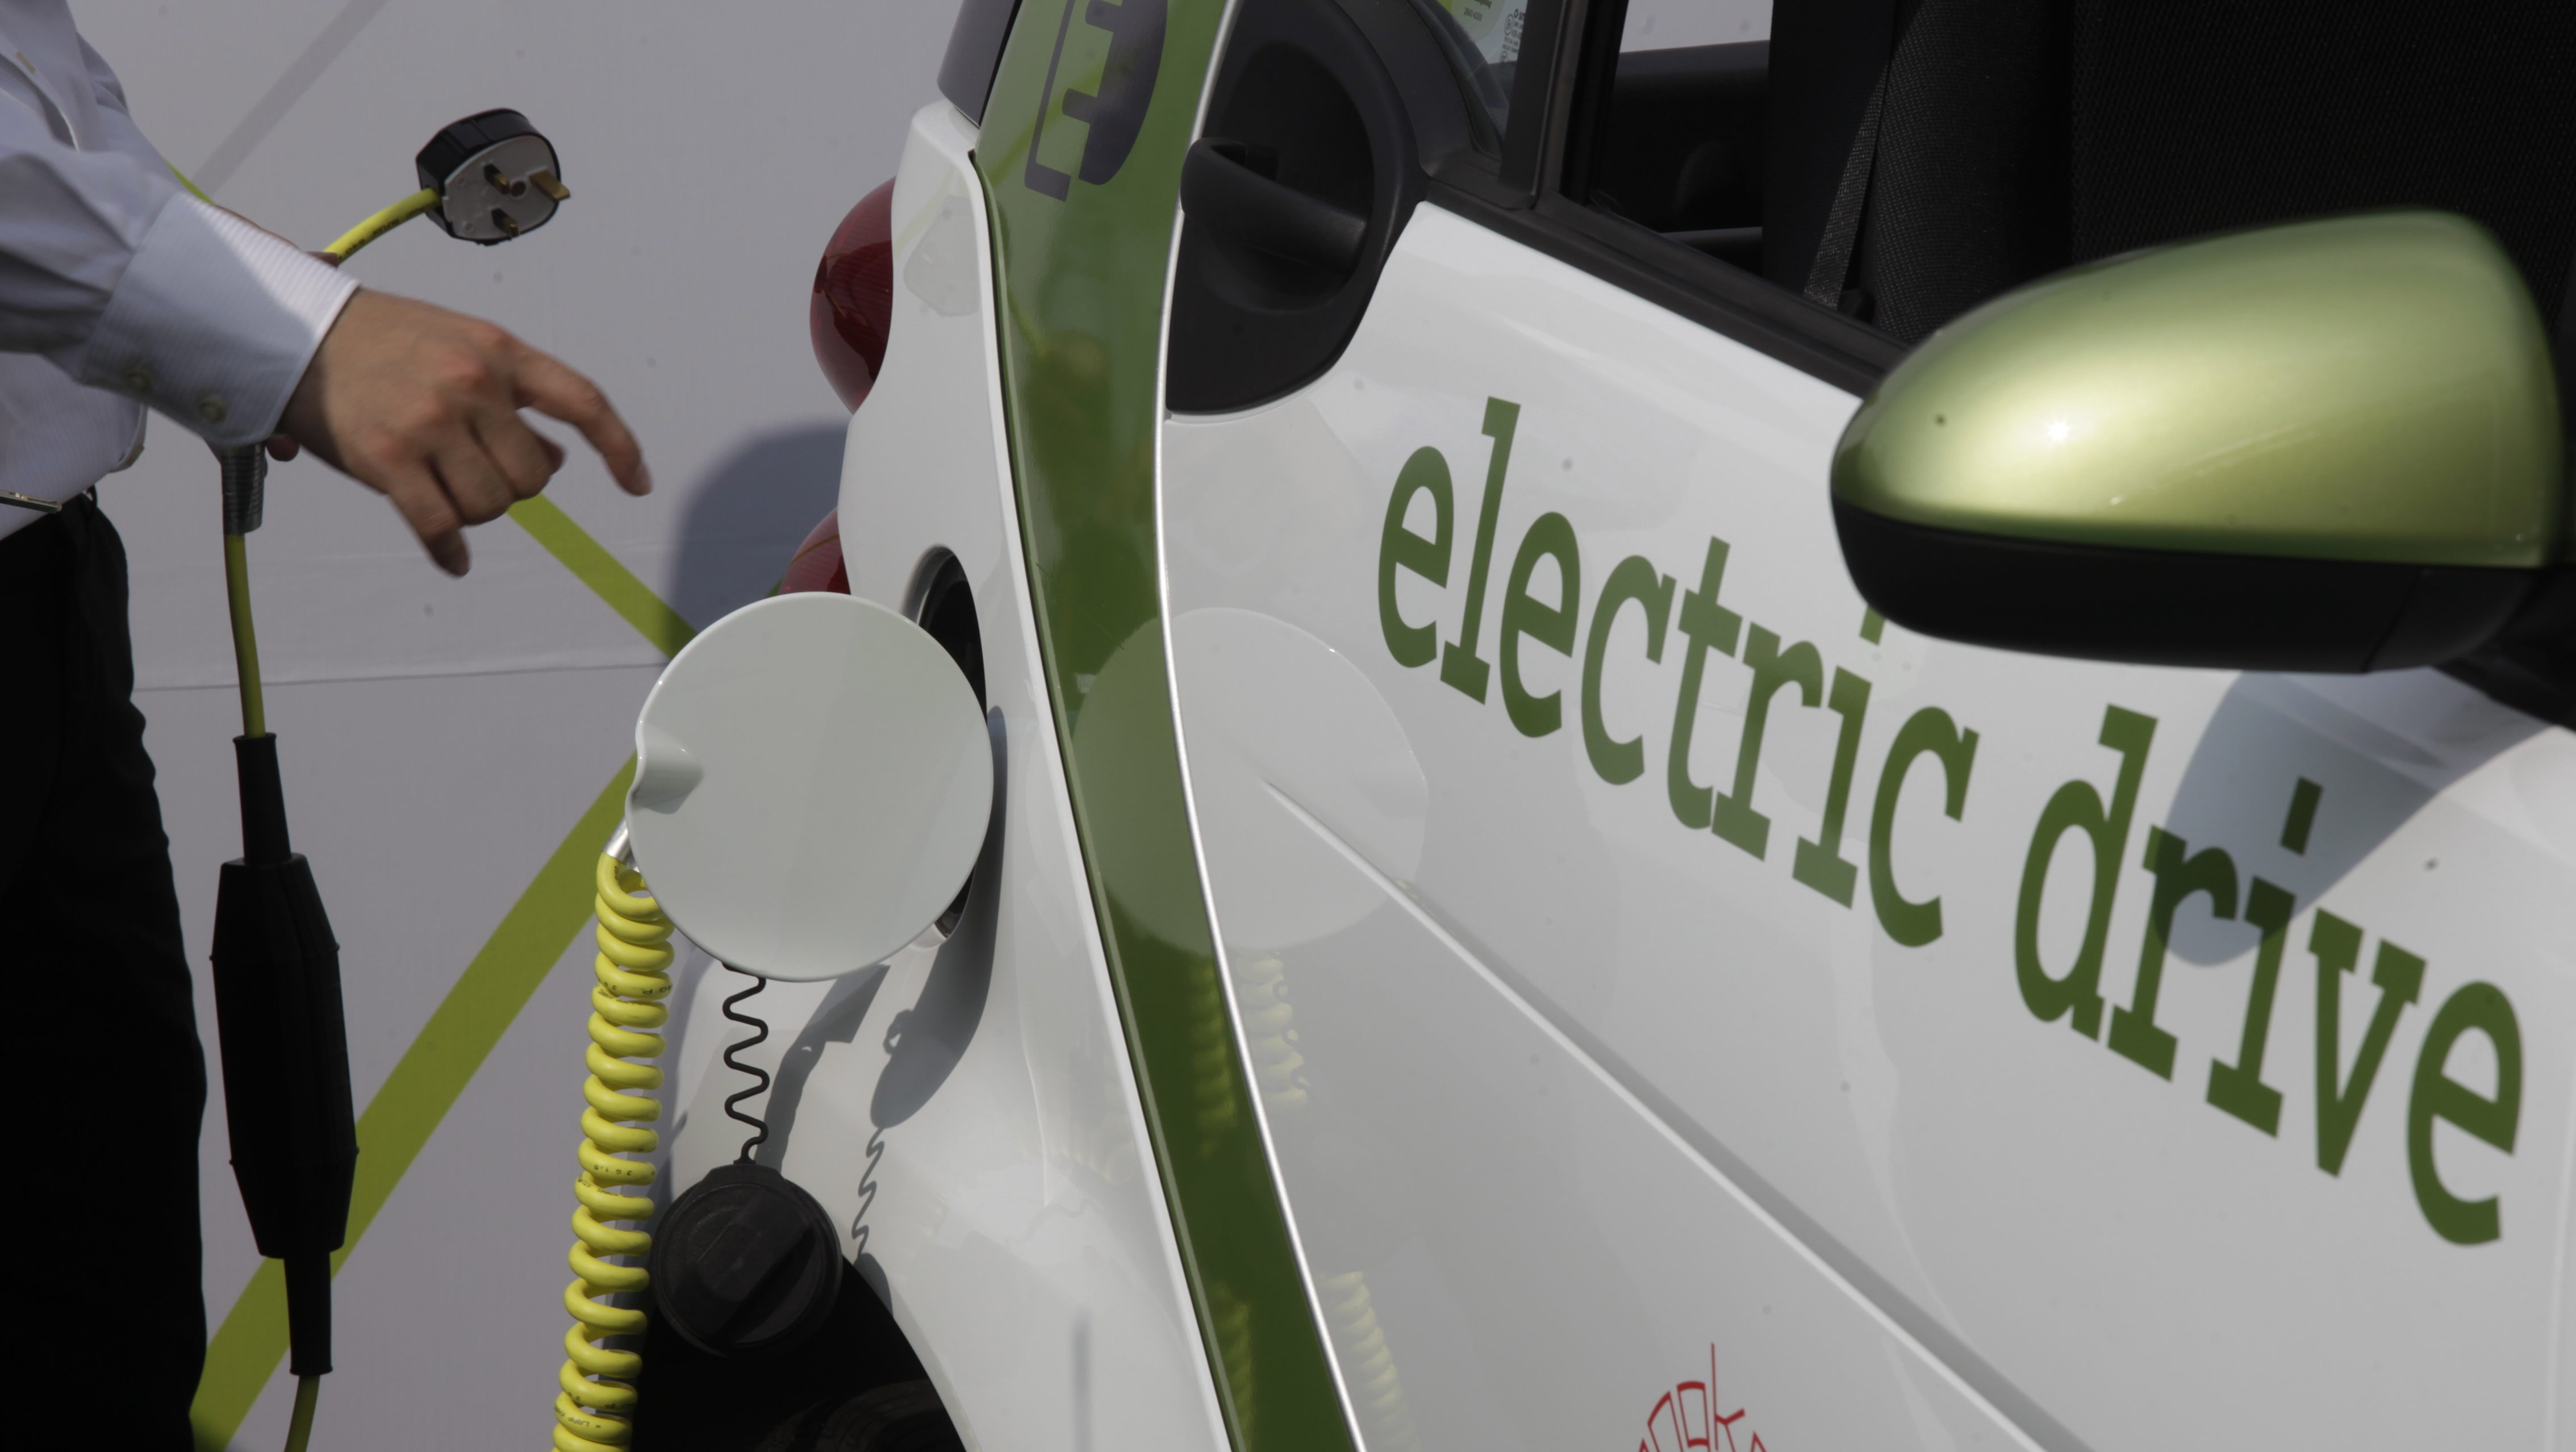 A man holds an electric socket beside a Mercedes-Benz Smart Fortwo electric vehicle during its official launch ceremony in Hong Kong, China, 06 September 2011. Smart Fortwo electric vehicle is the first European electric vehicle for daily use in Hong Kong. The two-seater, which is powered by a 30 kw electric motor fitted at the rear, runs a top speed of 100mph. EPA/YM YIK